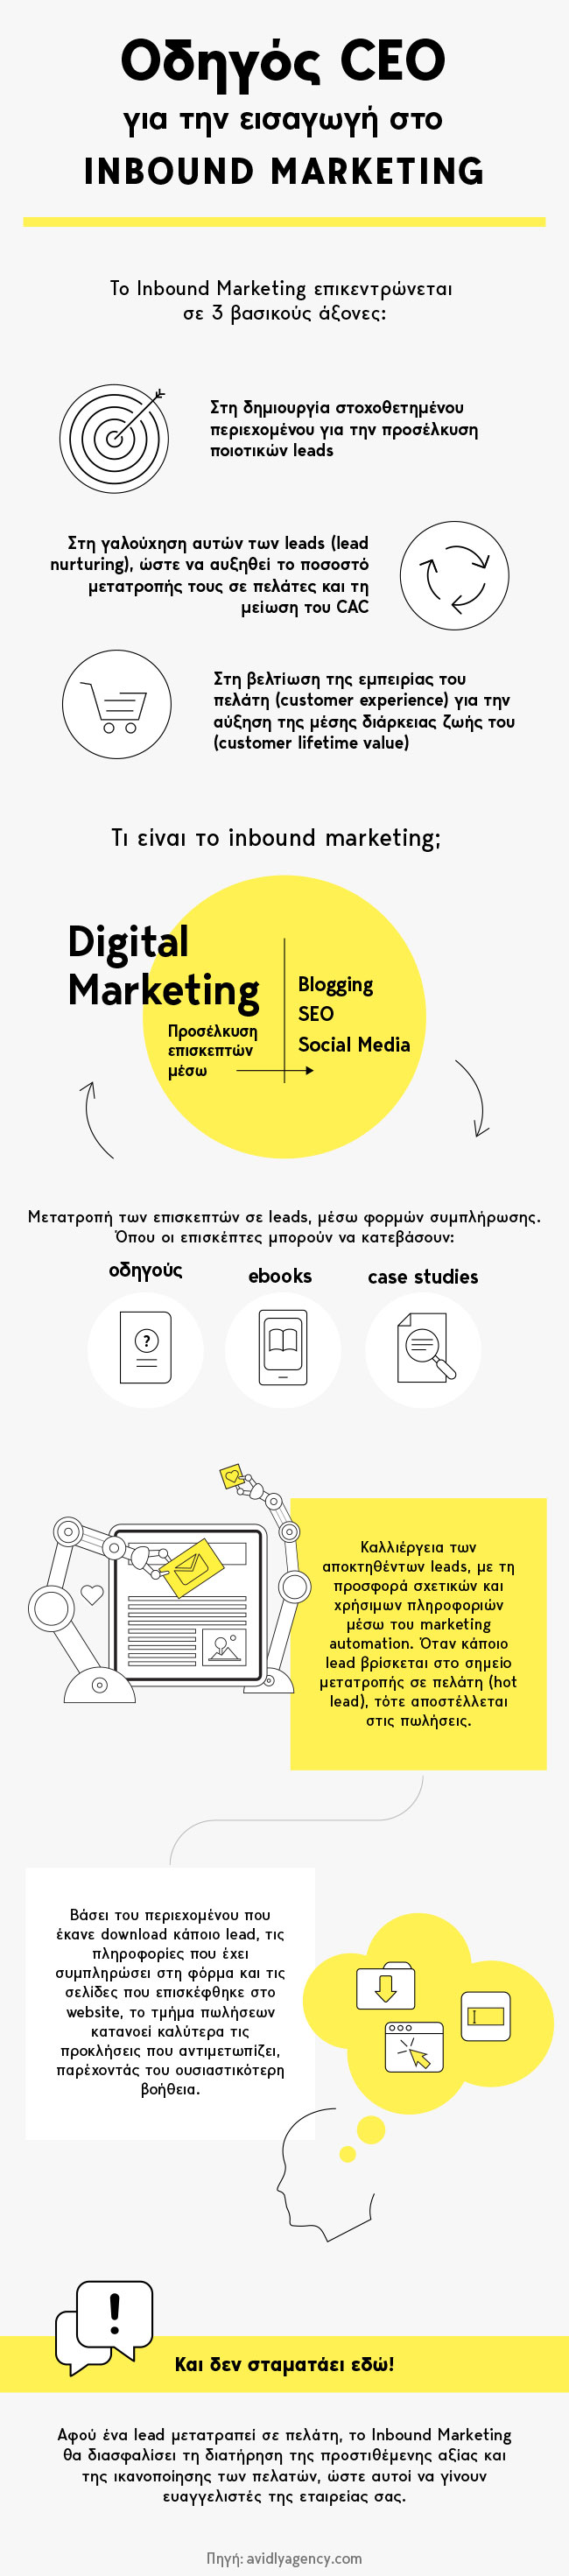 inbound-marketing-odhgos-gia-ceo-infographic